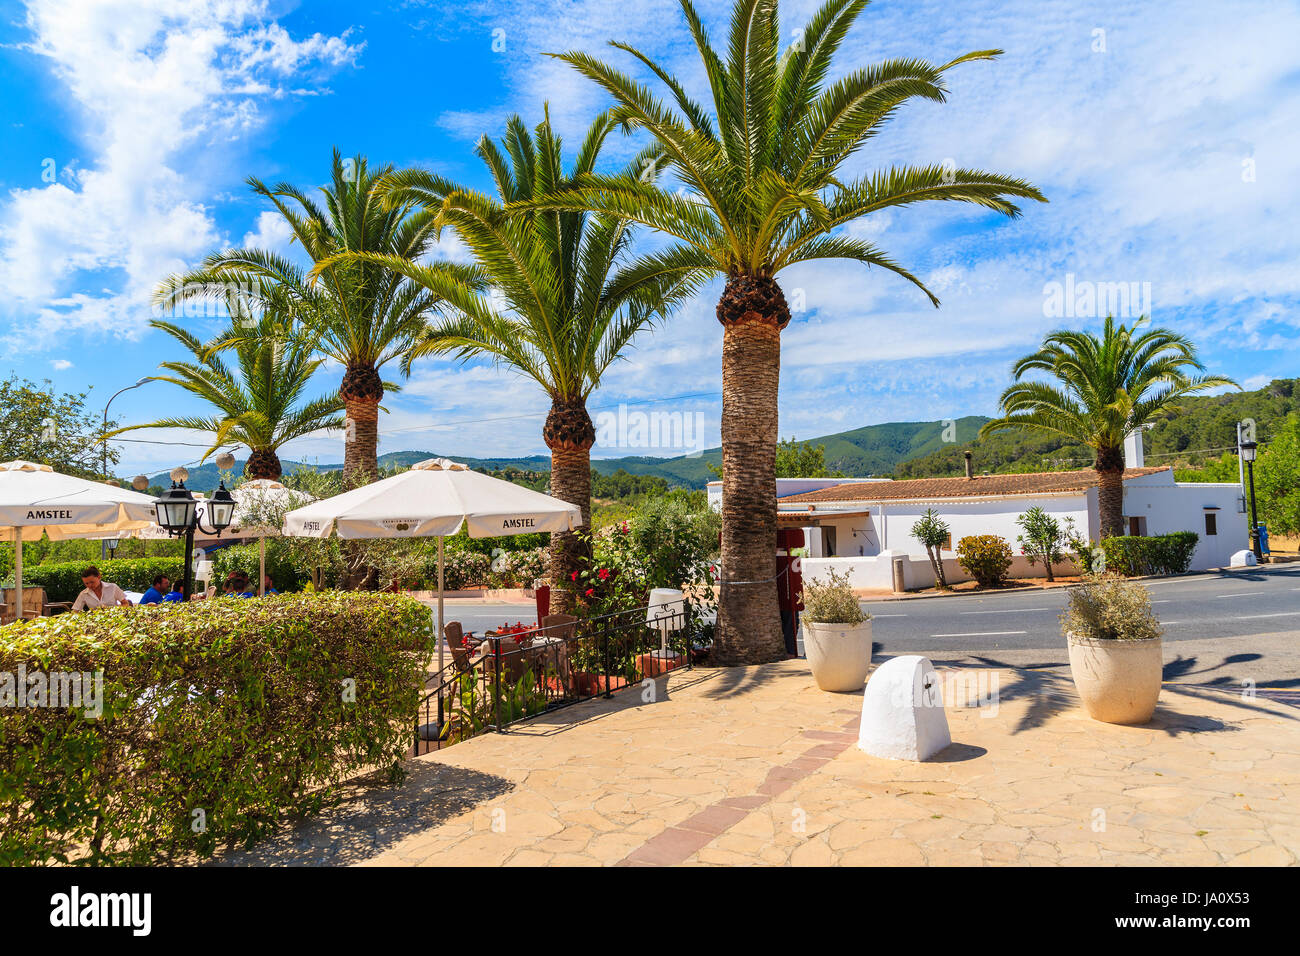 ibiza island, spain - may 18, 2017: garden of traditional